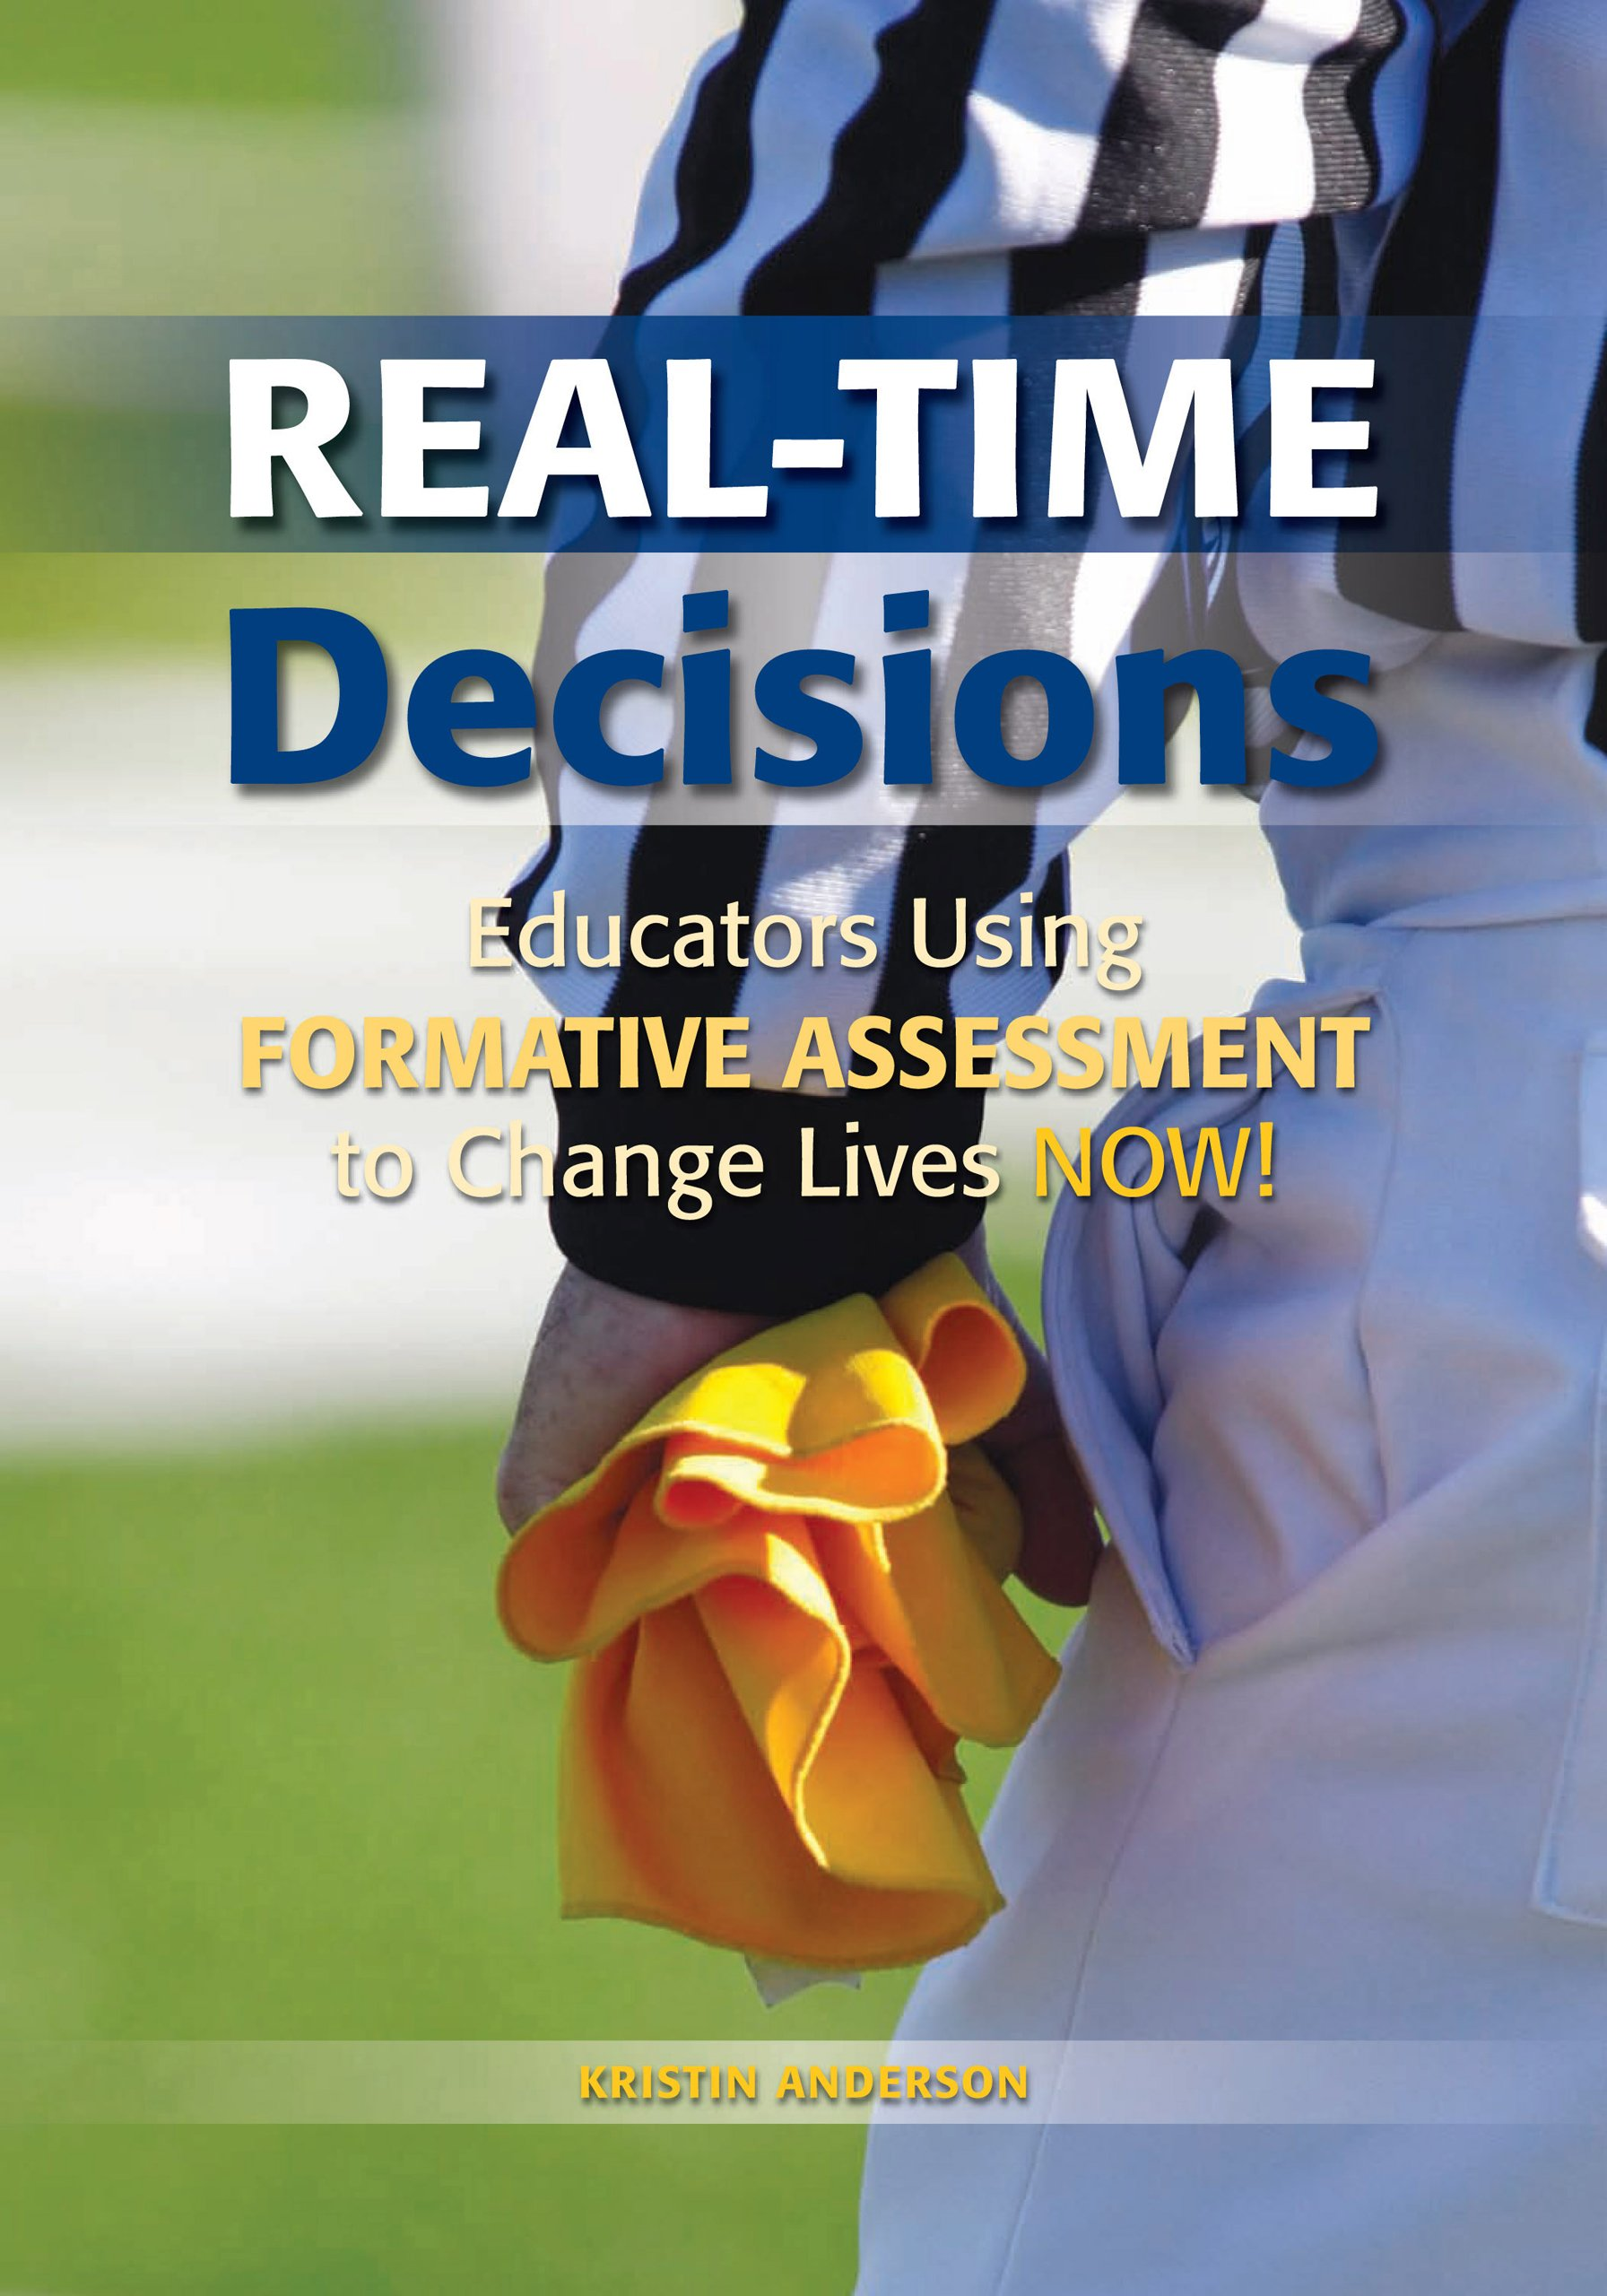 Real-Time Decisions:: Educators Using Formative Assessment to Change Lives NOW! PDF